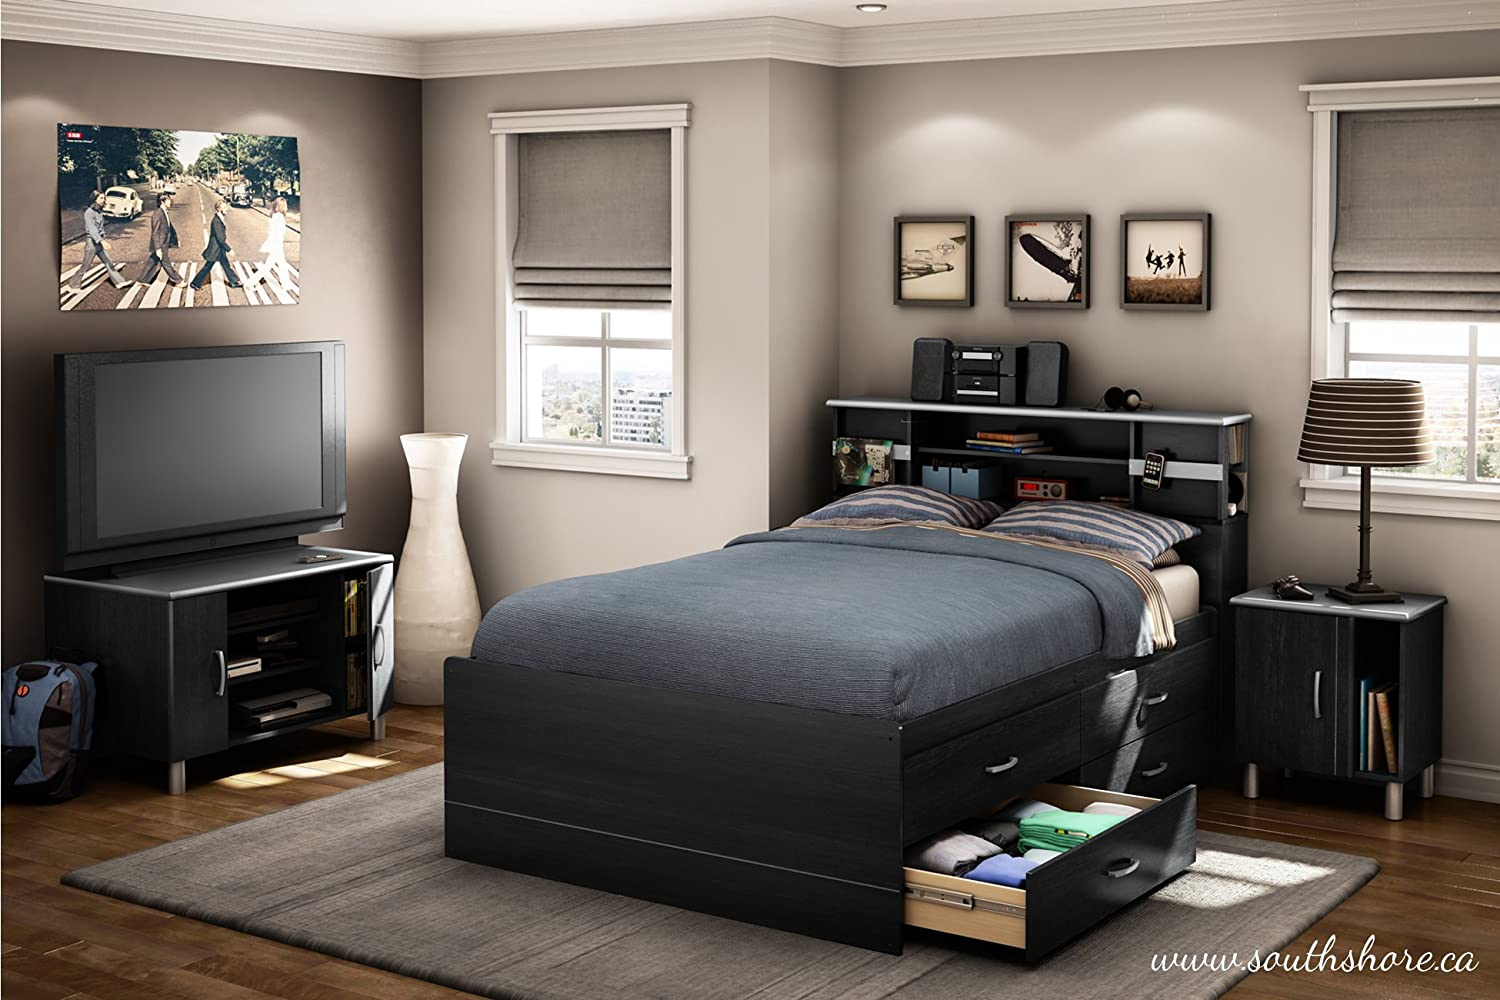 Amazon.com: South Shore Cosmos Collection Full Size Captainu0027s Bed, Black  Onyx And Charcoal: Kitchen U0026 Dining